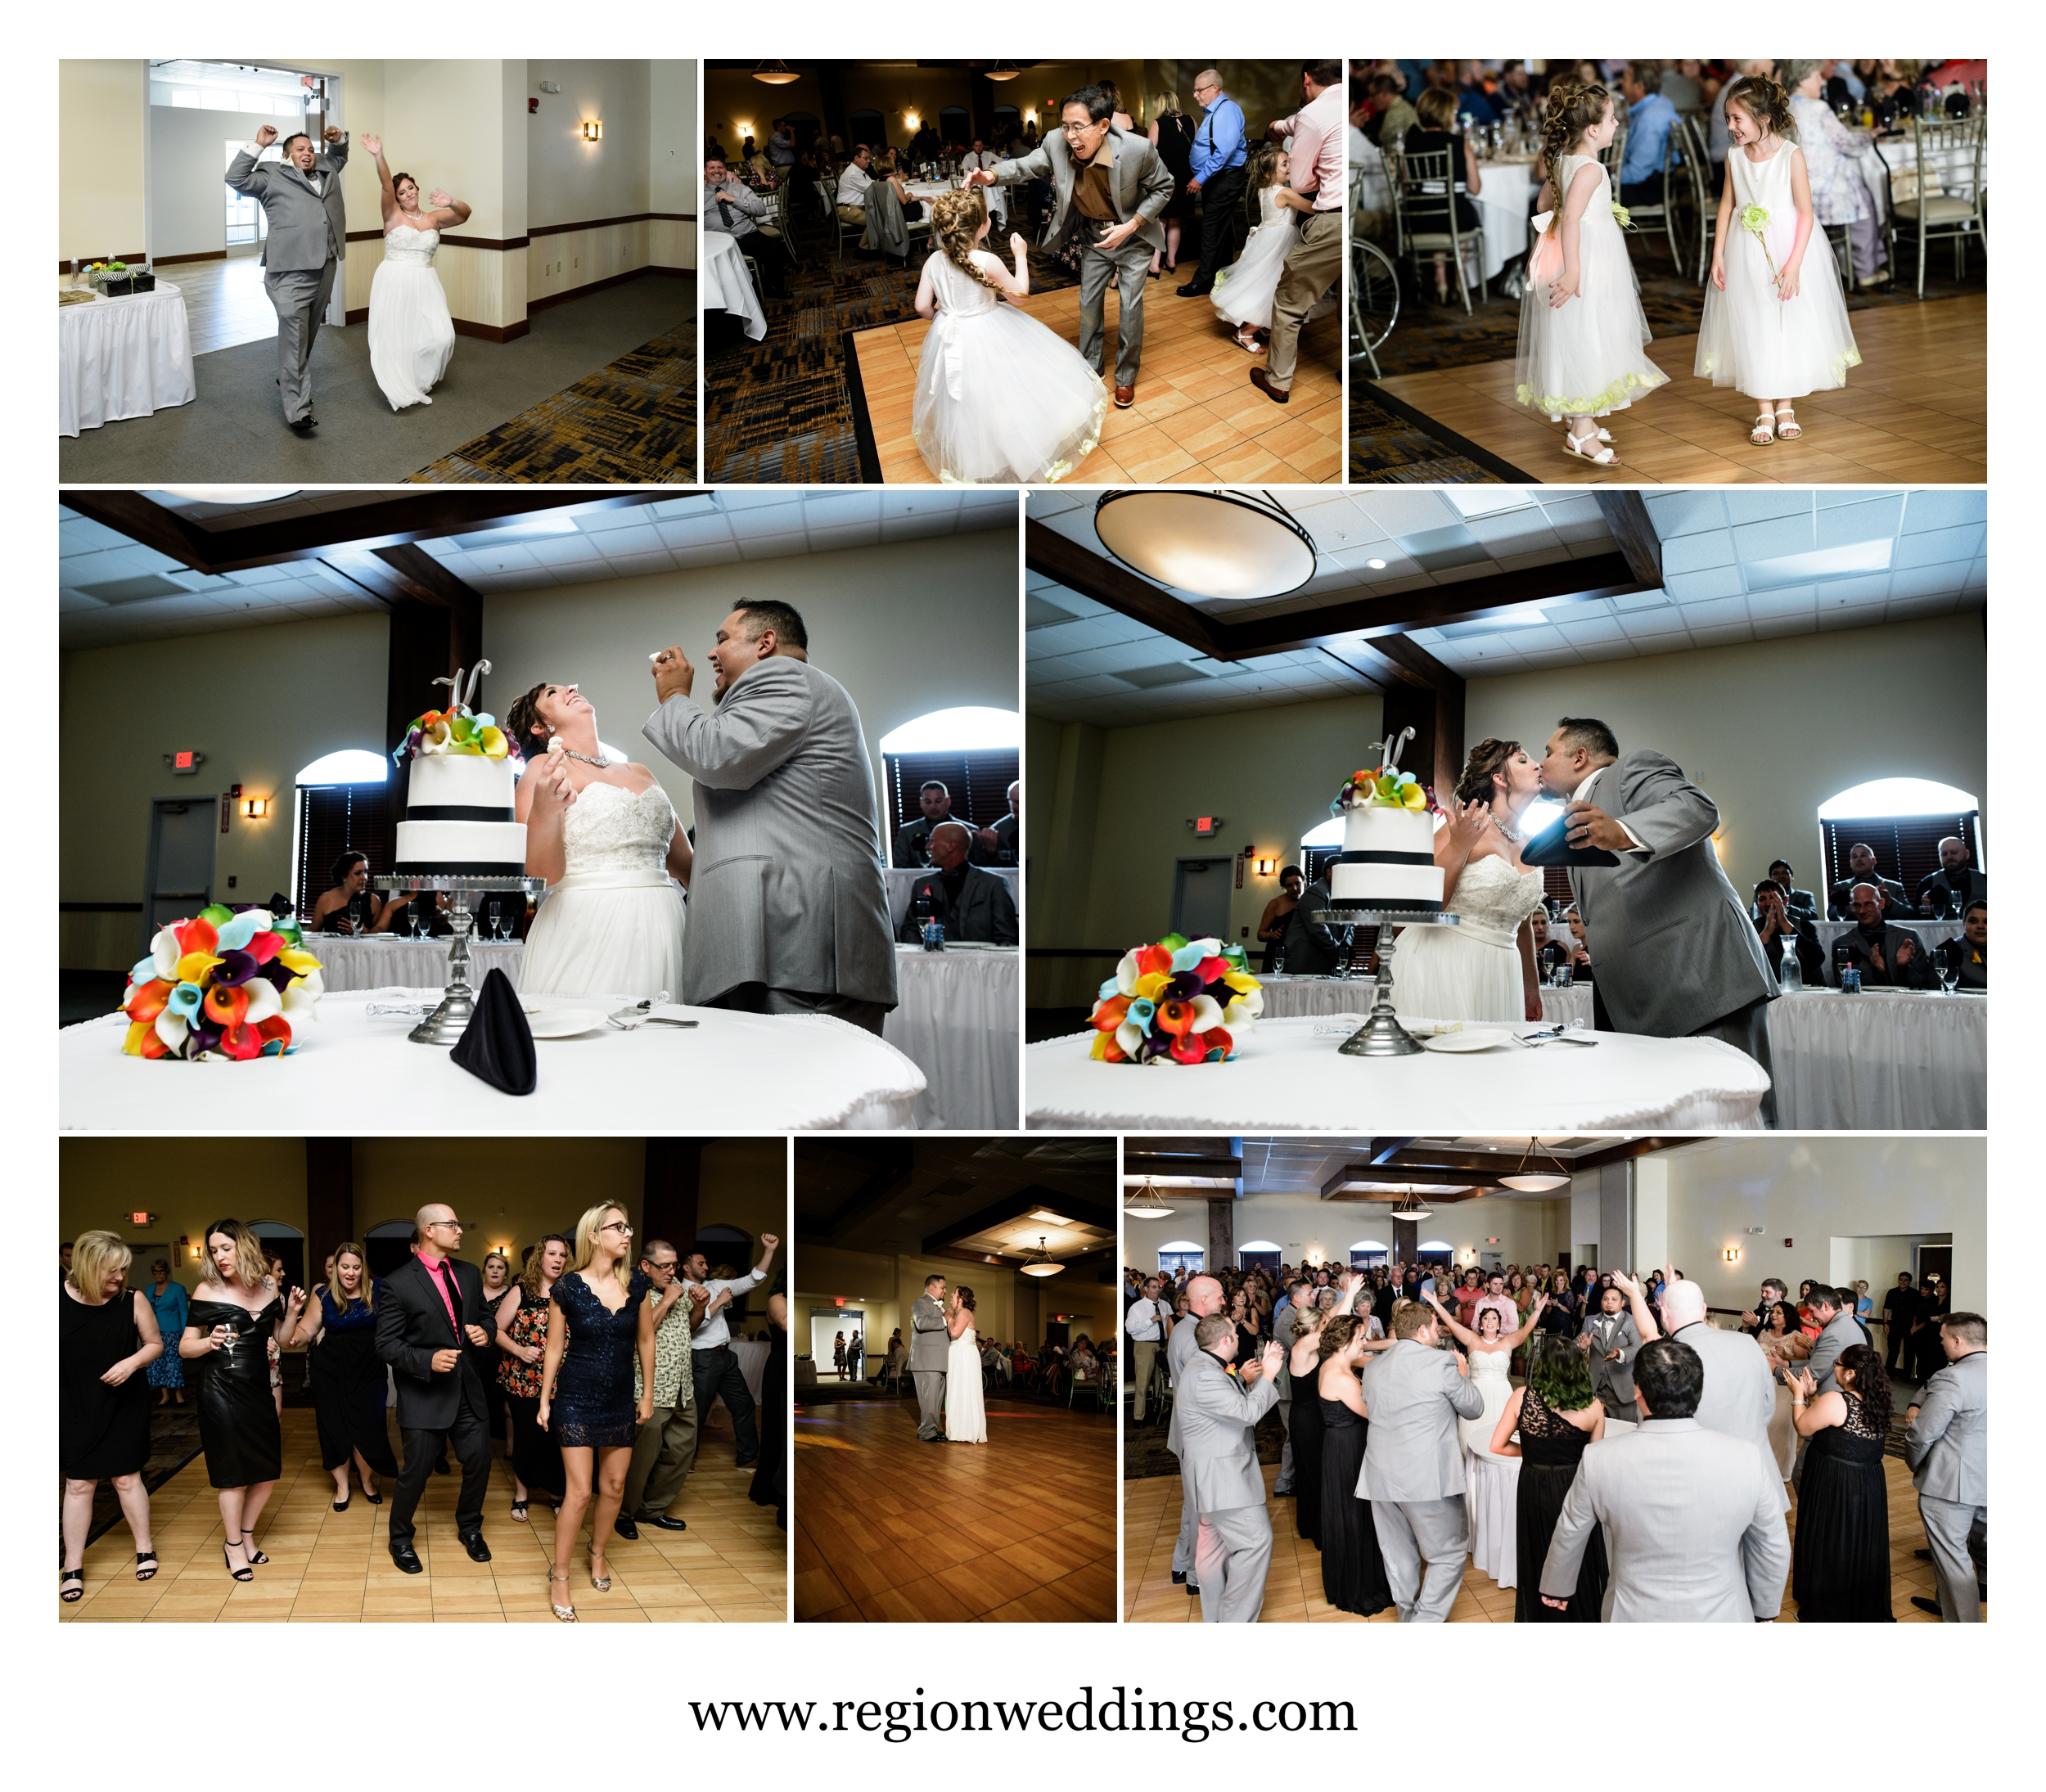 Wedding reception celebration at Signature Banquets in Lowell, Indiana.